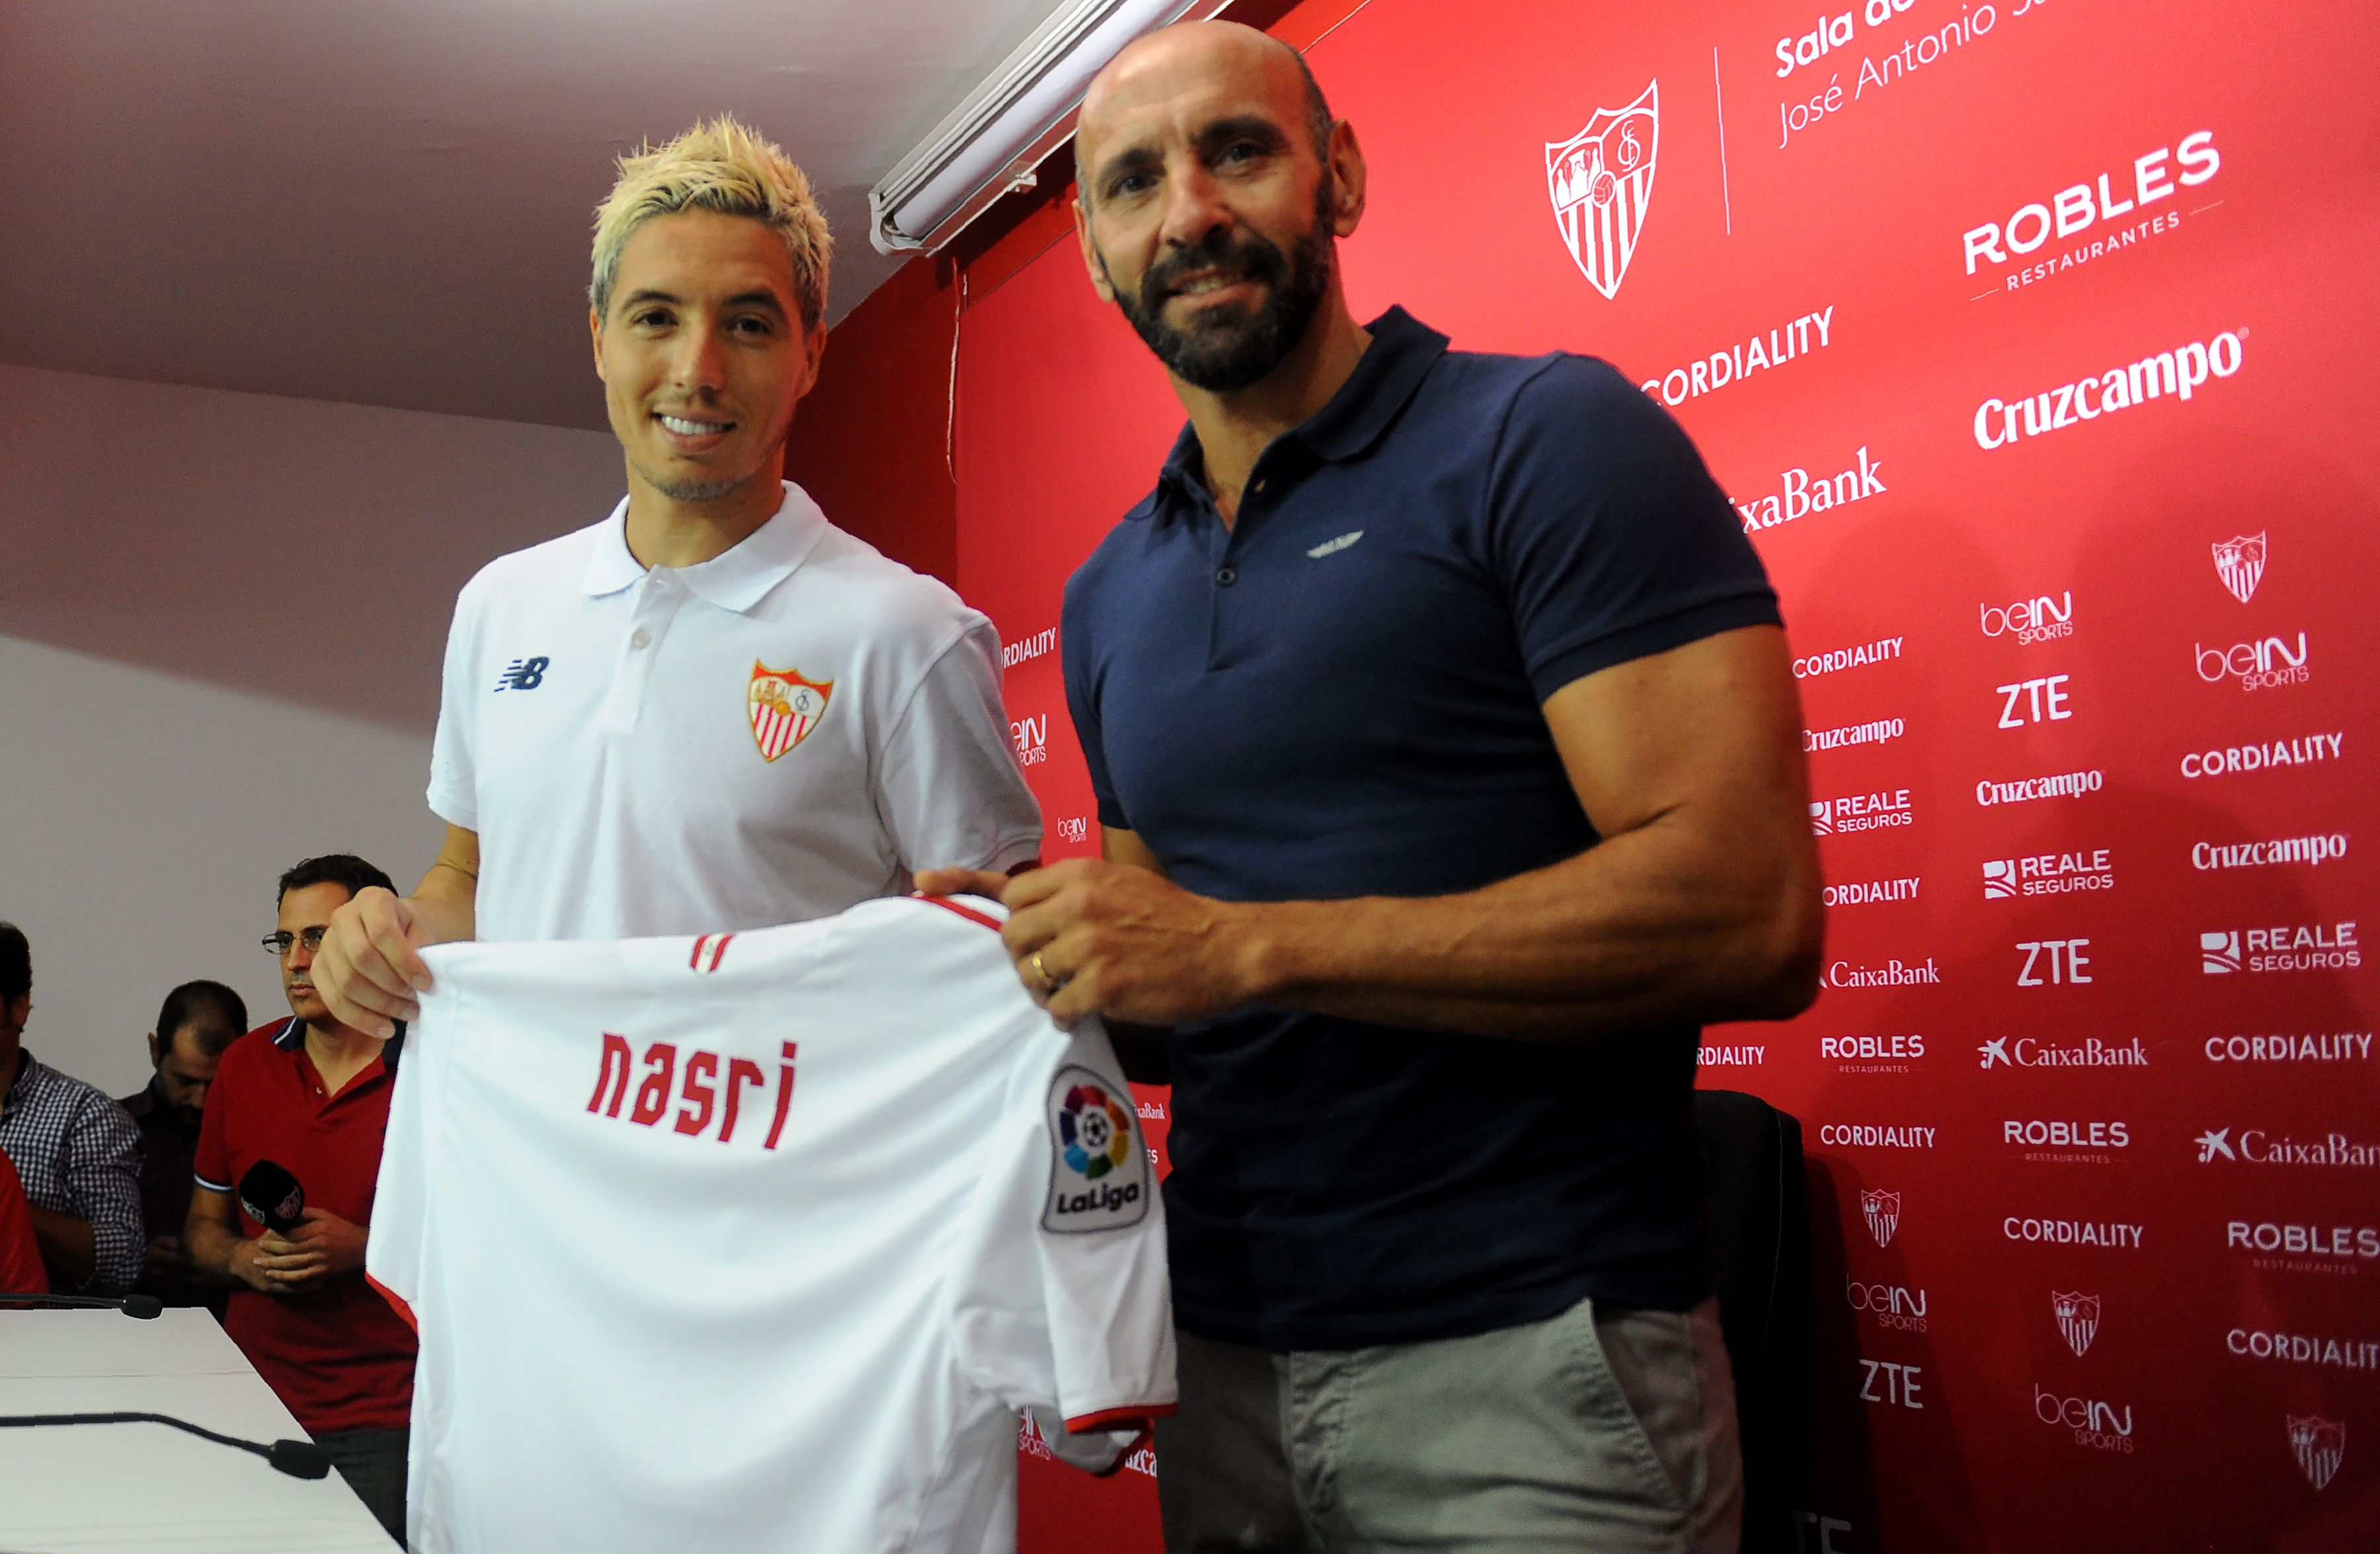 Sevilla's new French player Samir Nasri (L) poses with Sevilla's sports director Monchi, during his official presentation at the Ramon Sanchez Pizjuan stadium in Sevilla on September 1, 2016. / AFP / Cristina Quicler (Photo credit should read CRISTINA QUICLER/AFP/Getty Images)